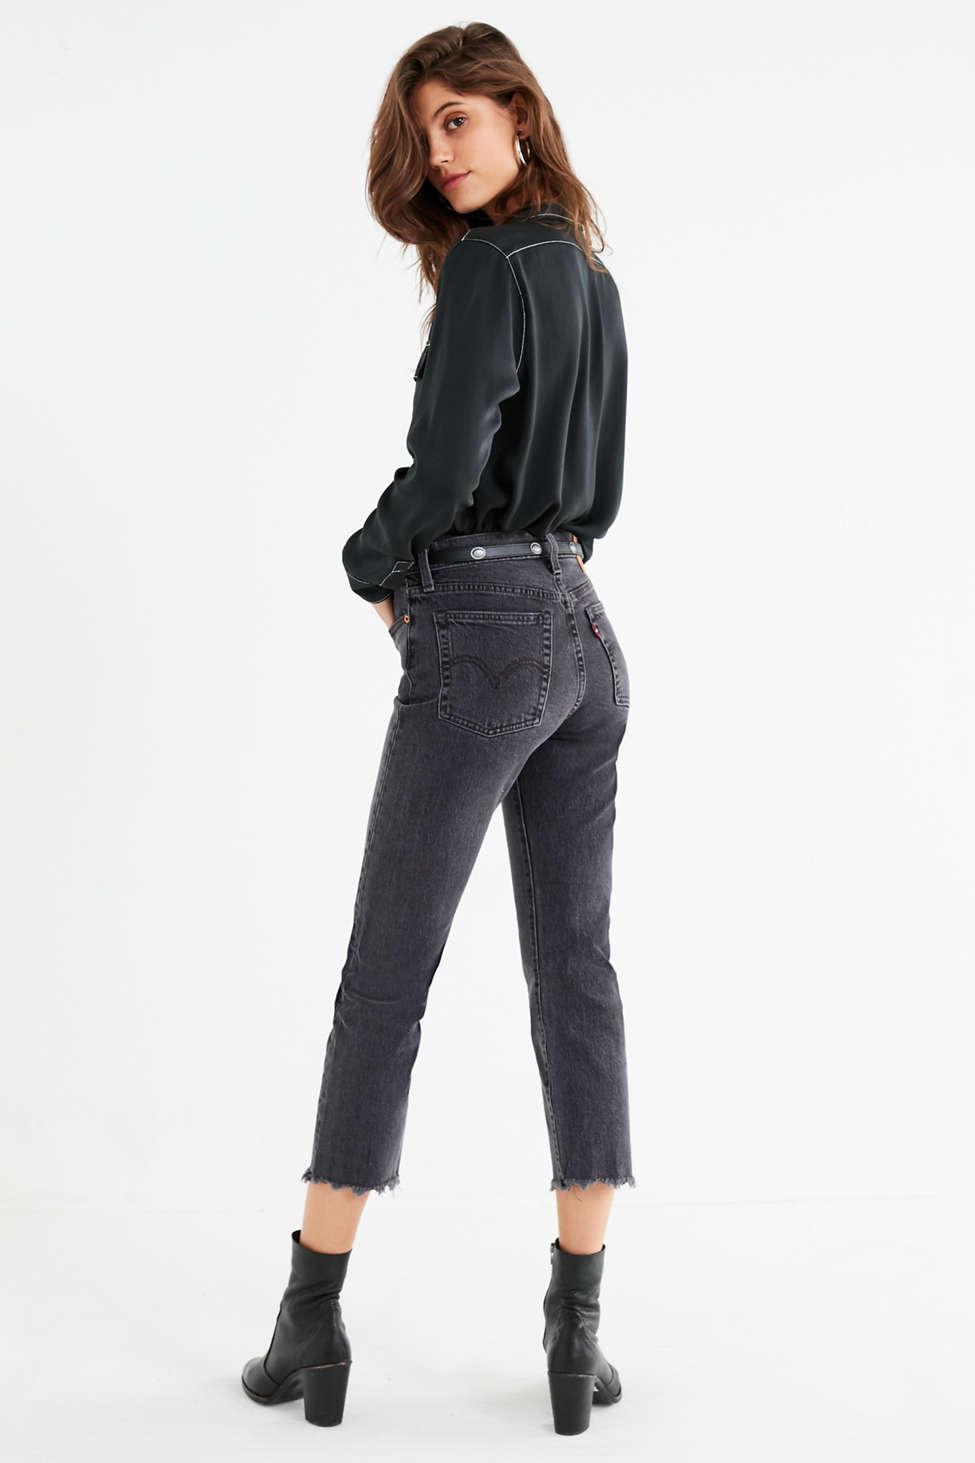 Levi S Wedgie High Rise Jean That Girl Urban Outfitters